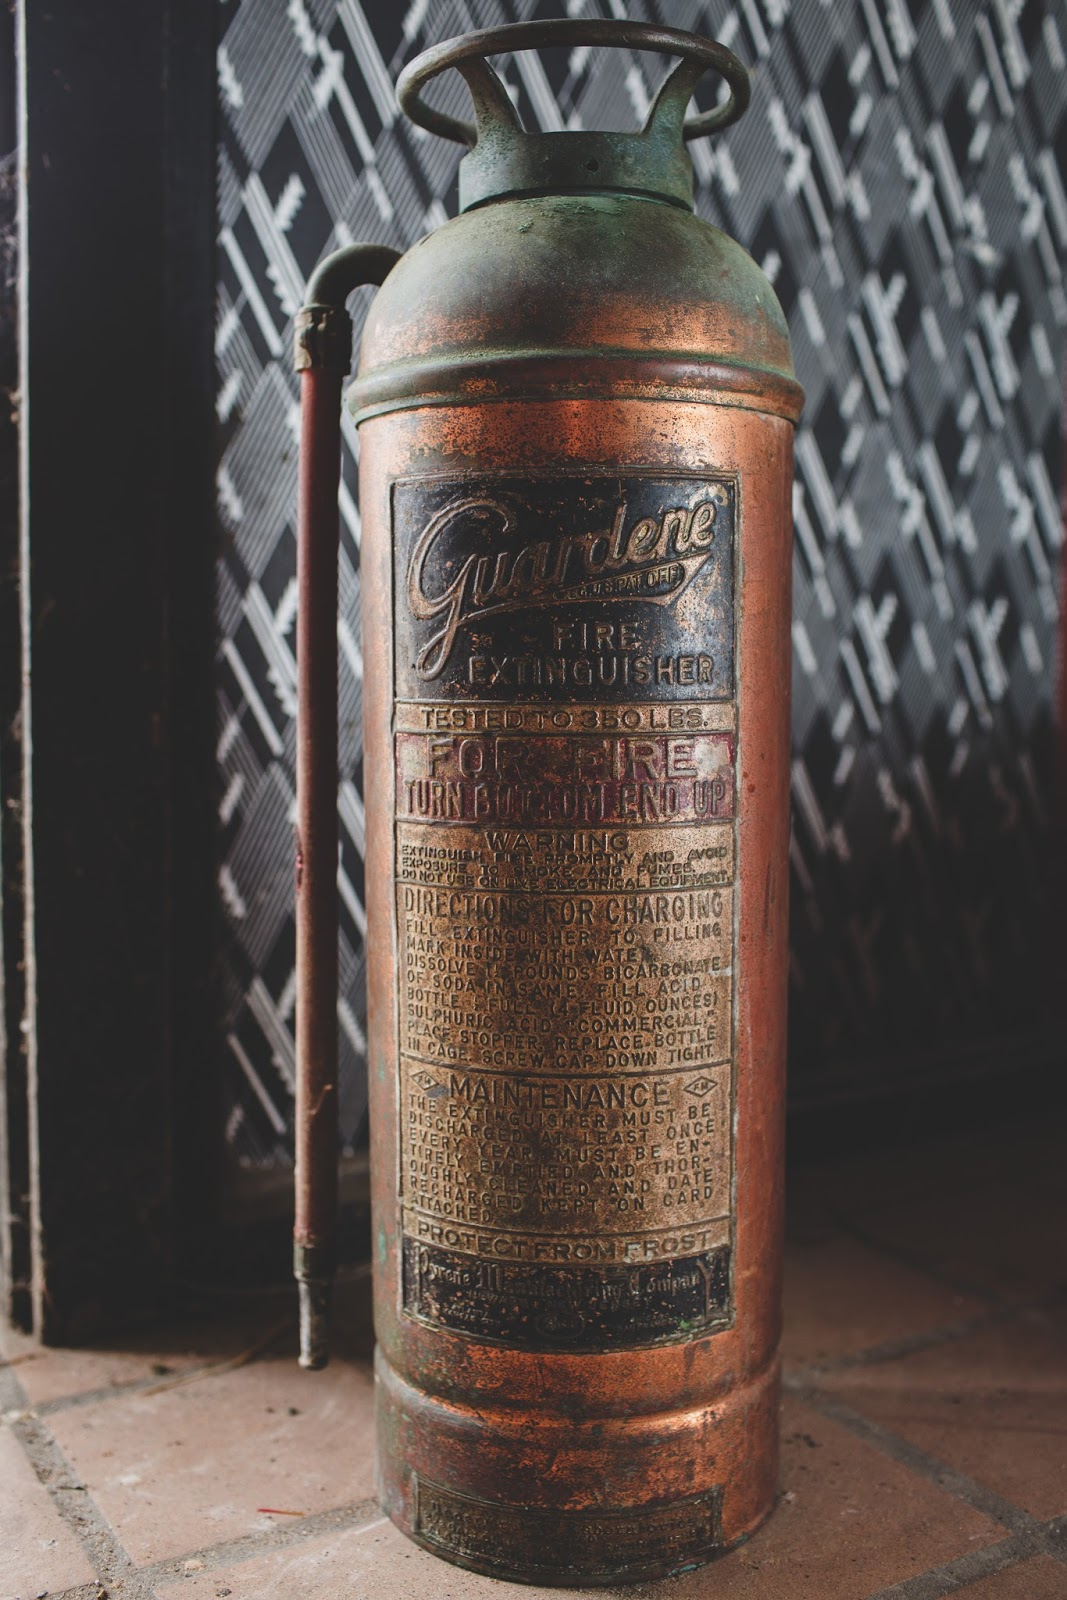 Antique Copper Guardene Fire Extinguisher in Bells Theatre - bit.ly/bellstheatre